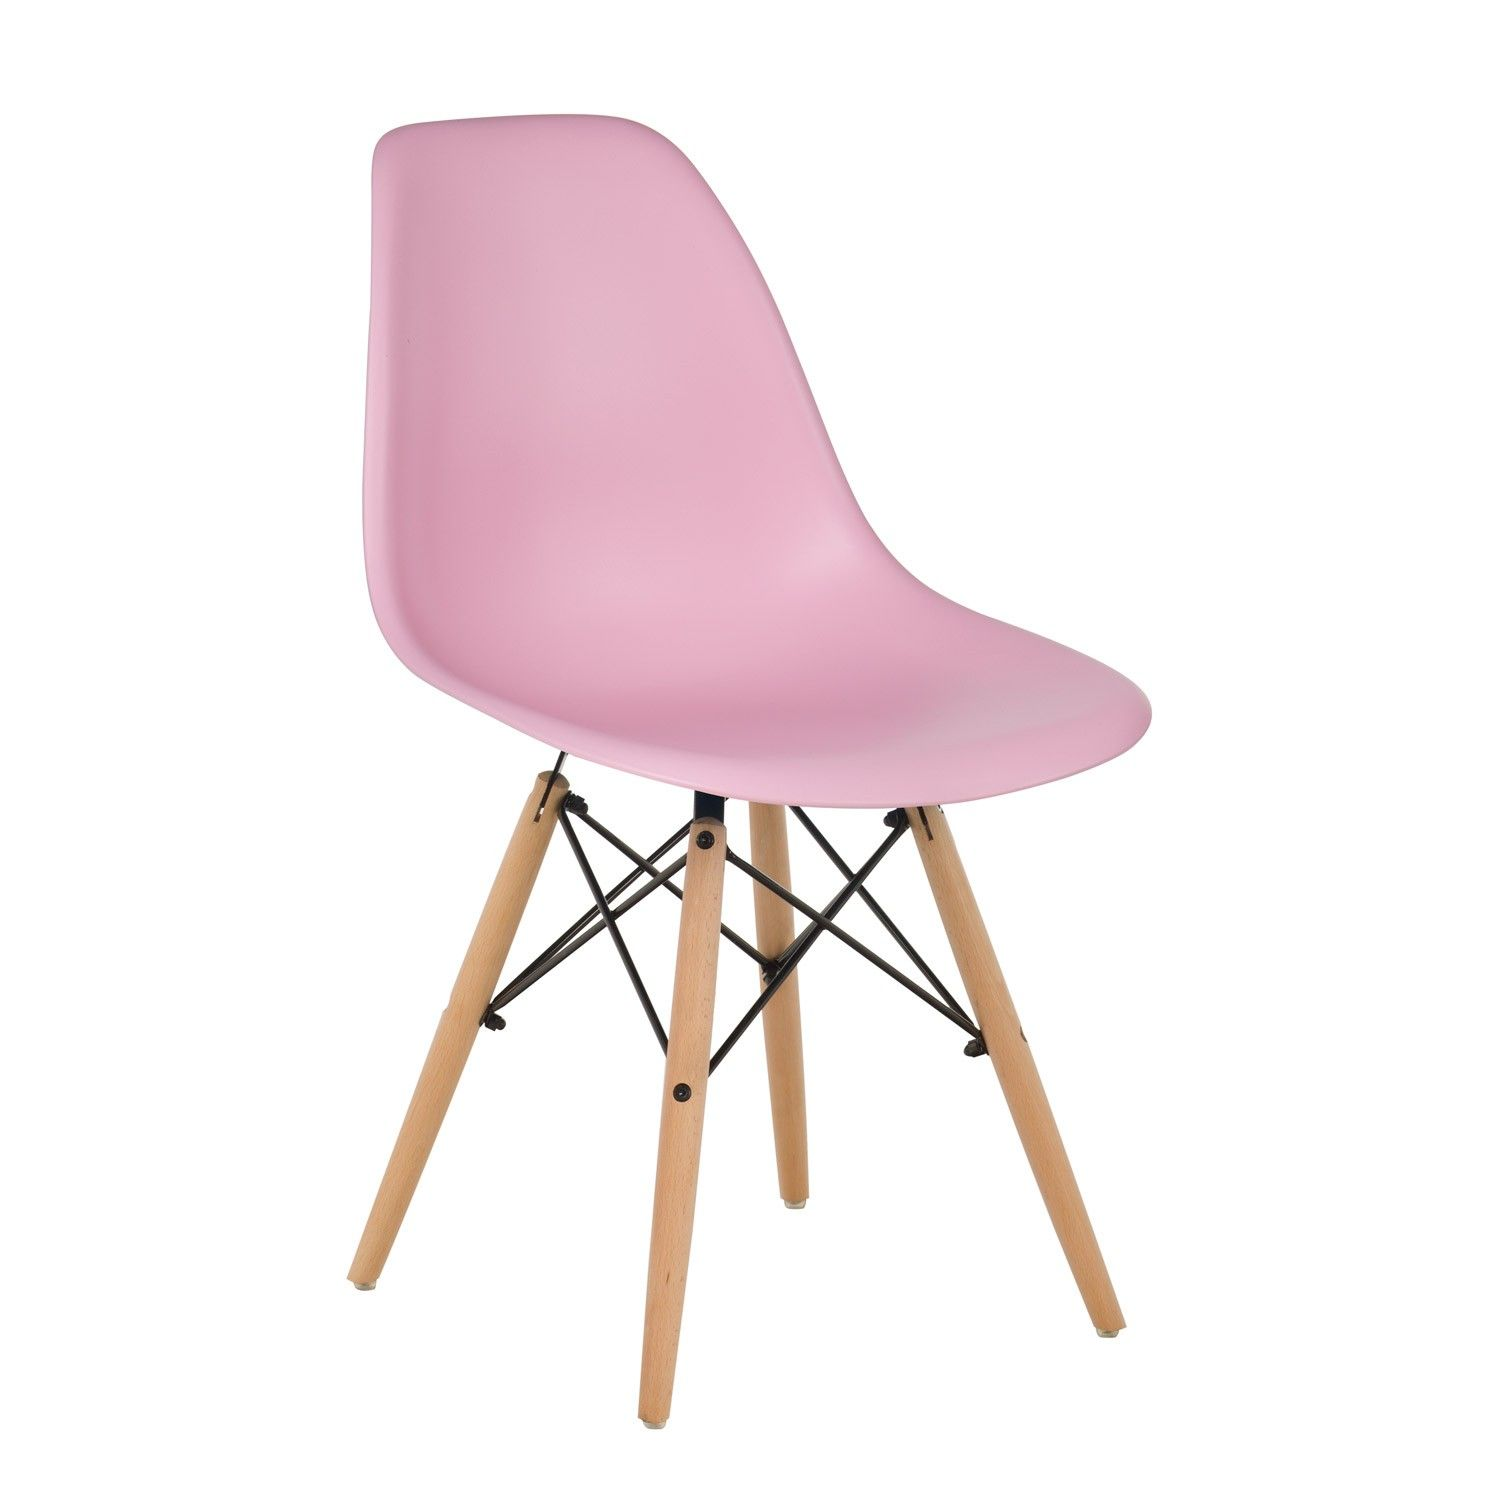 chairs Eames 2019ChairFarmhouse table chairin Pink erdxBCo